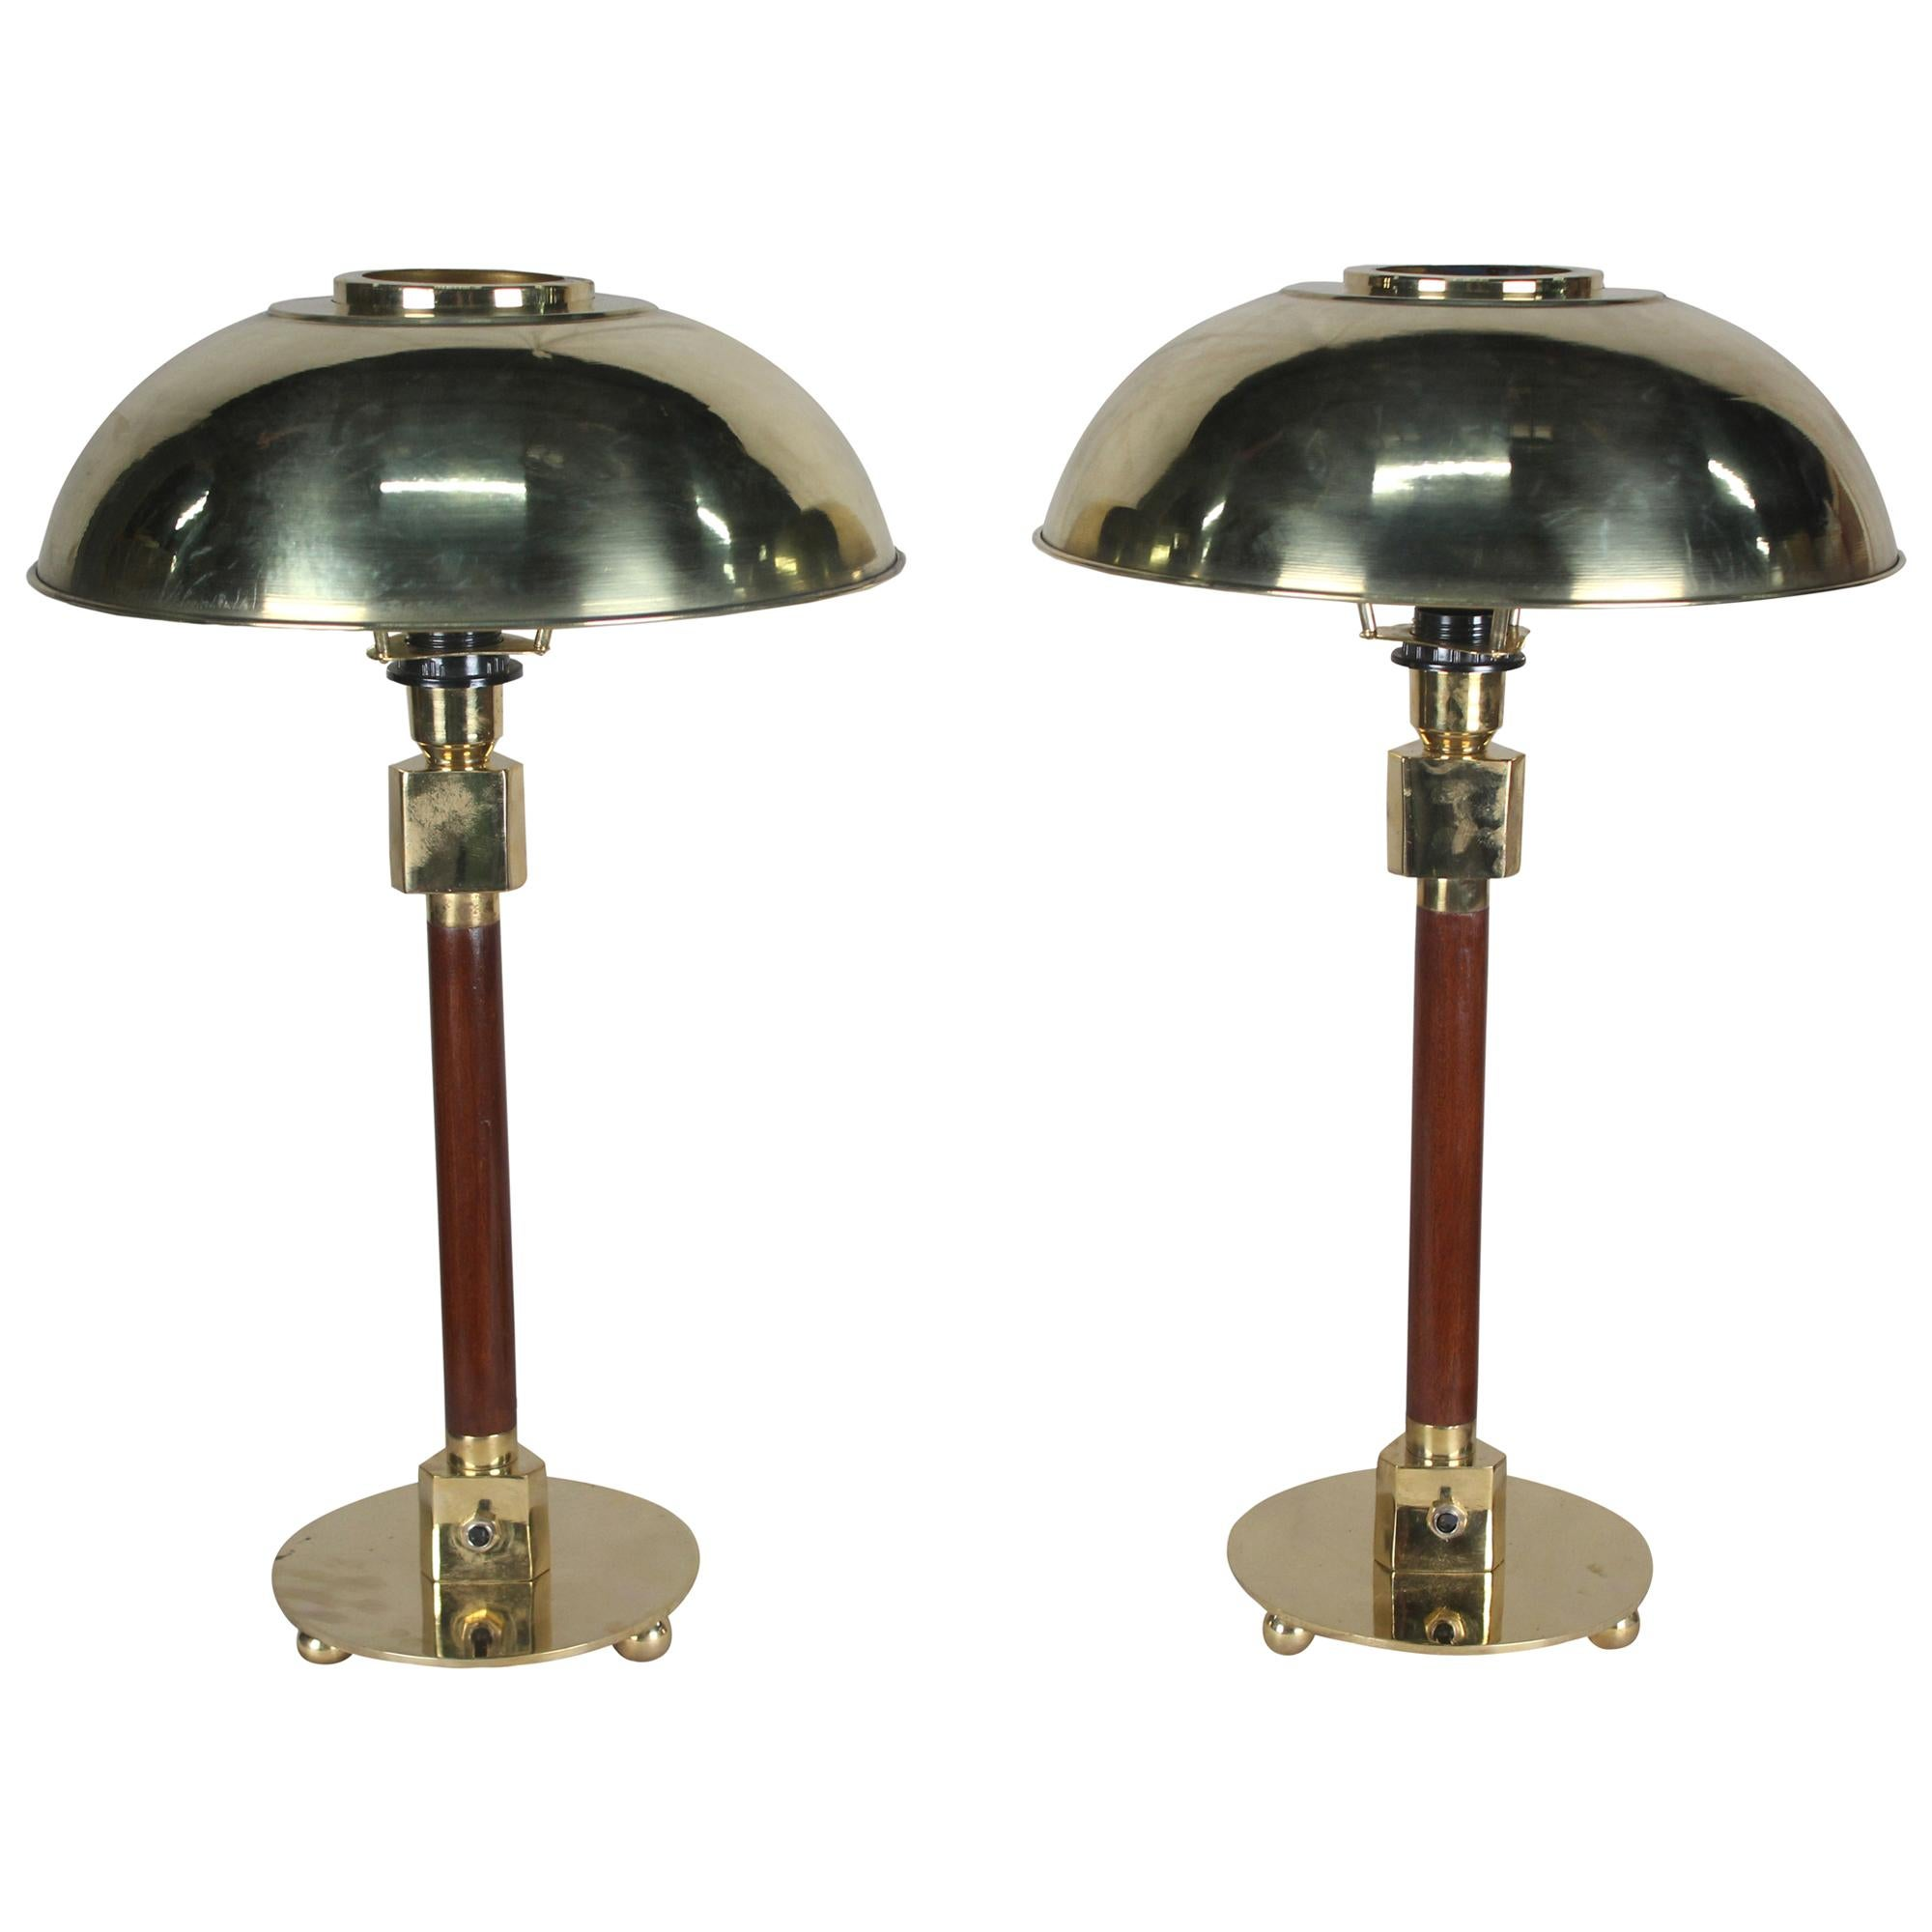 Pair of Teak and Brass Nautical Ship's Stateroom Table Lamps